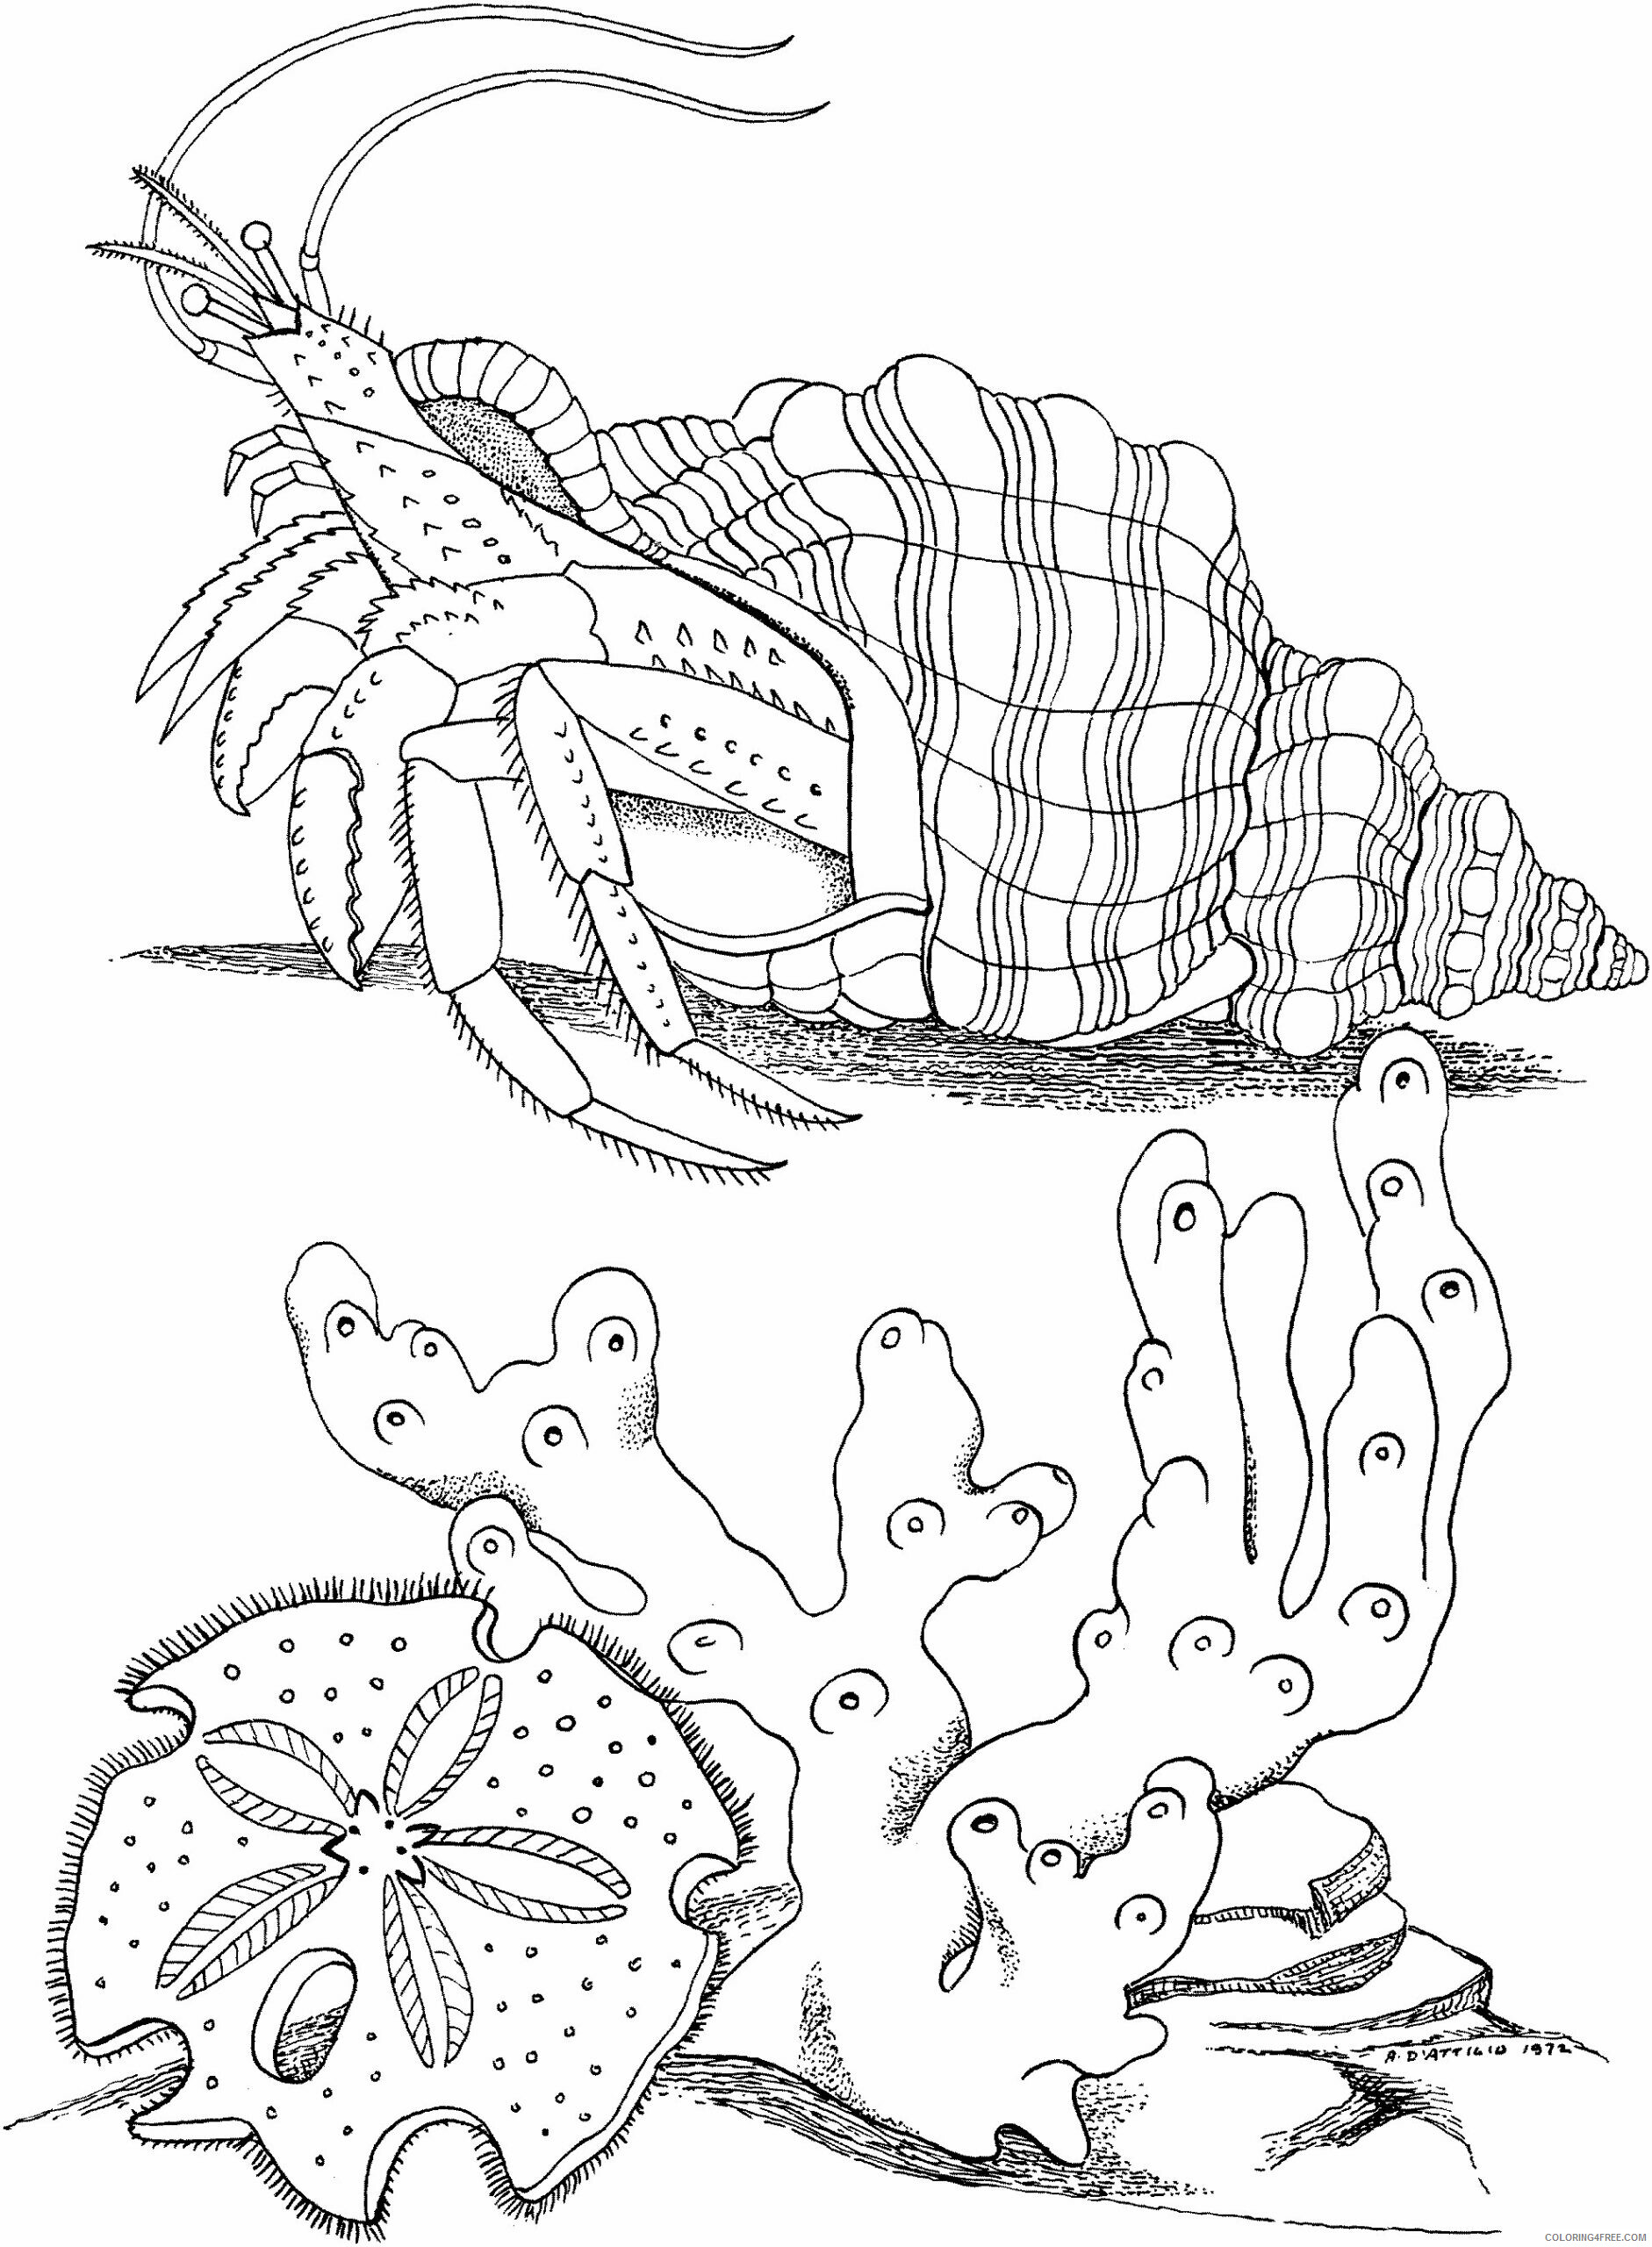 Hermit Crab Coloring Pages Animal Printable Sheets Hermit Crab To Print 2021 2666 Coloring4free